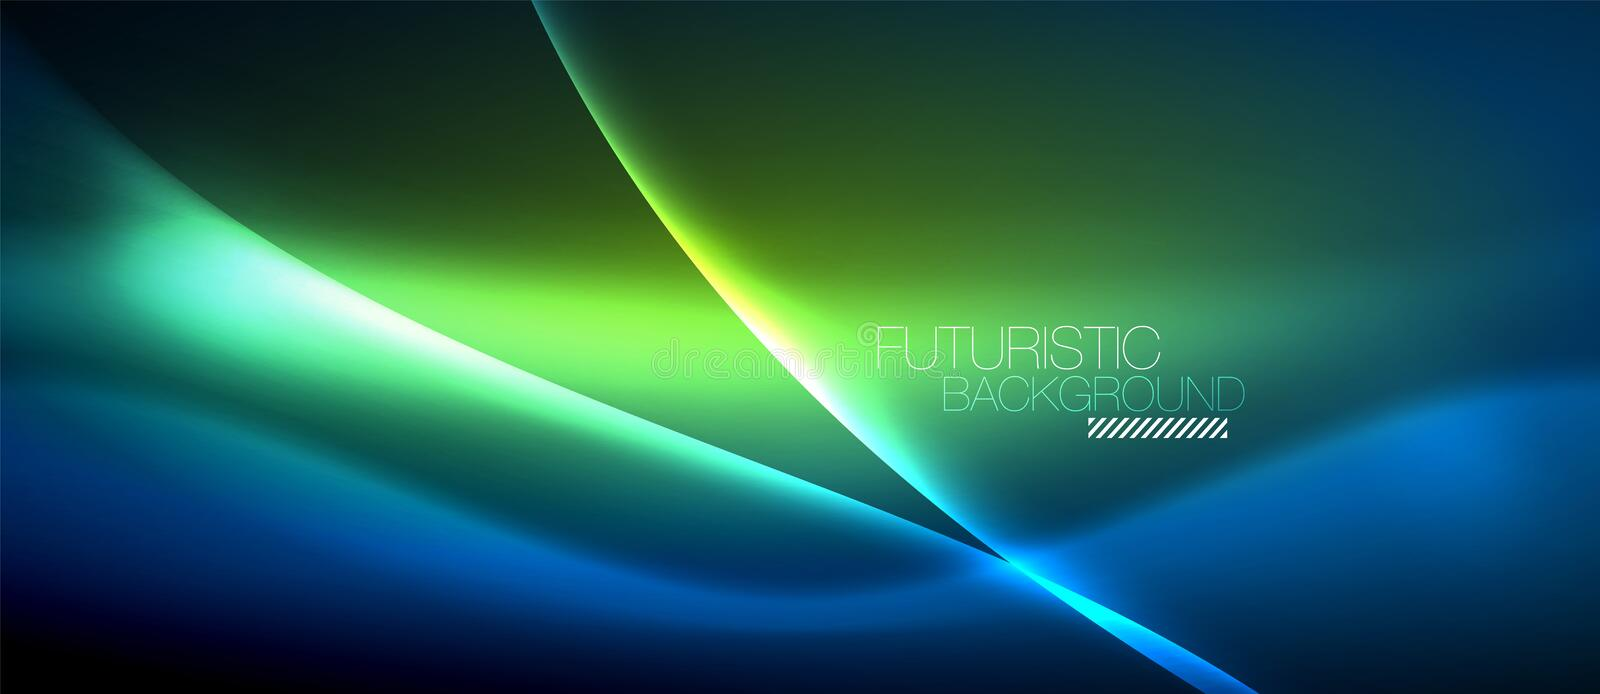 Neon glowing wave, magic energy and light motion background vector illustration